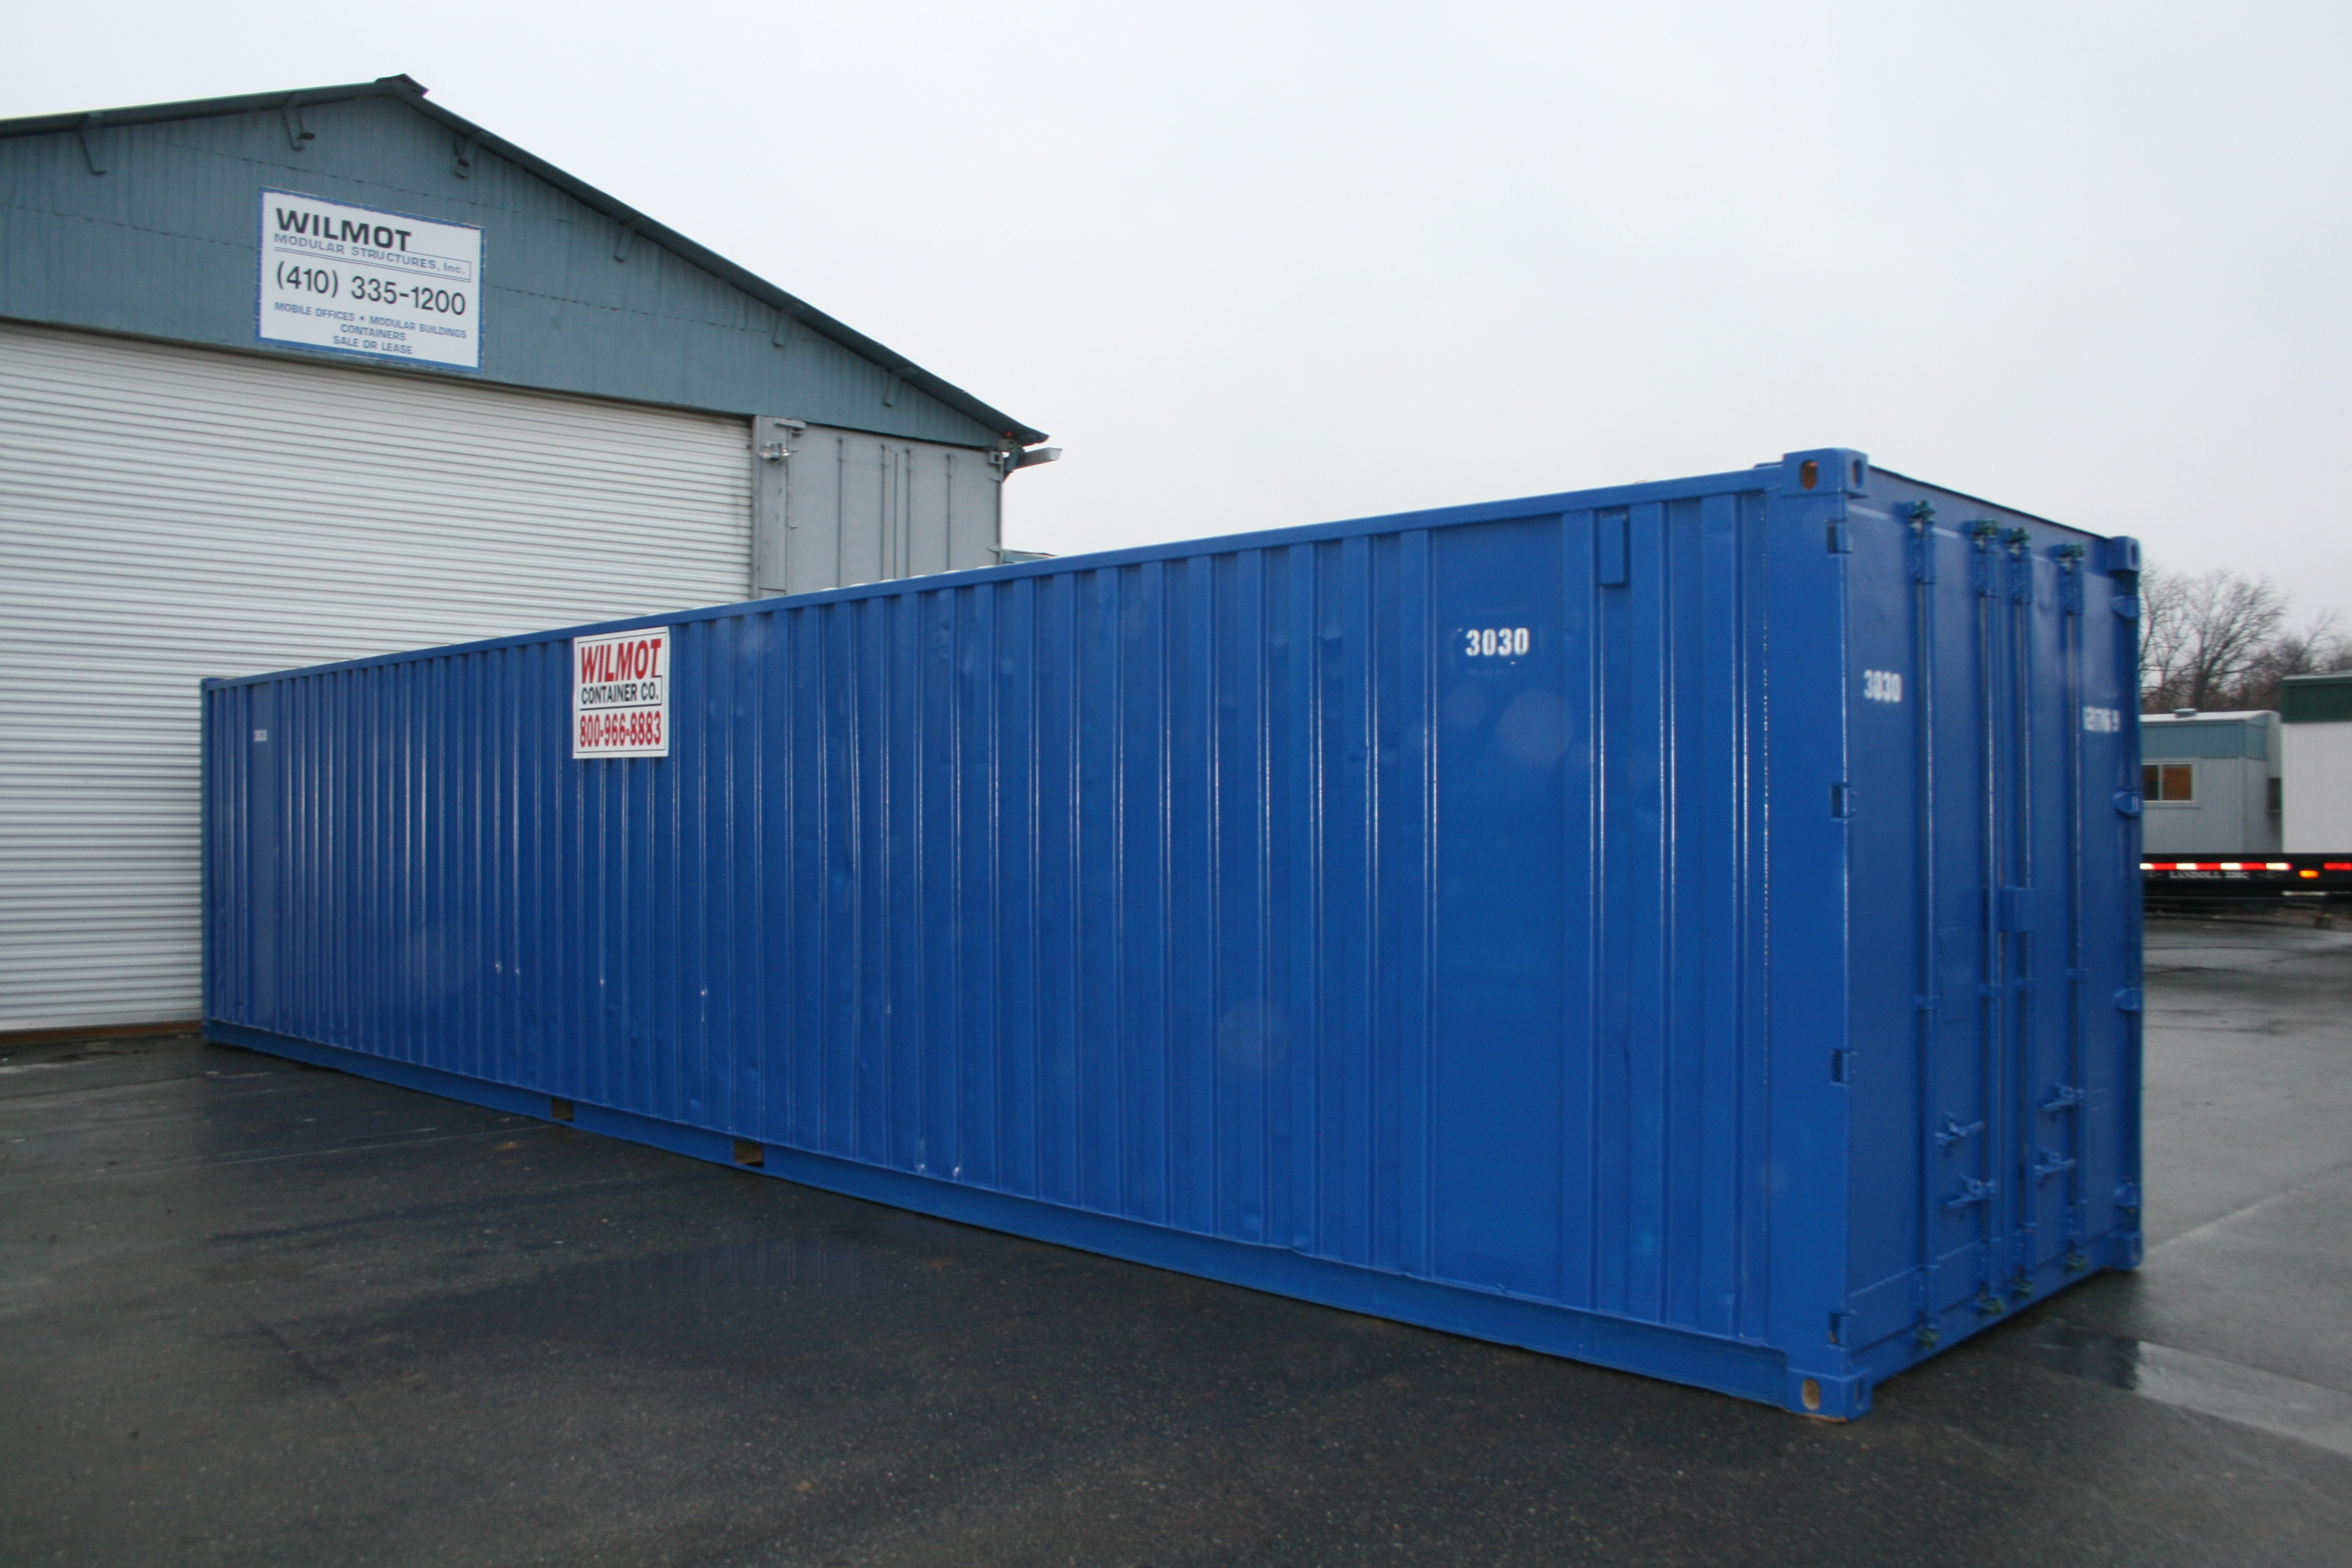 we the fabrication western rentals sale providing services canada and am ltd from sales full for photo are container range of experts shipping s office design service to containerwest a manufacturing